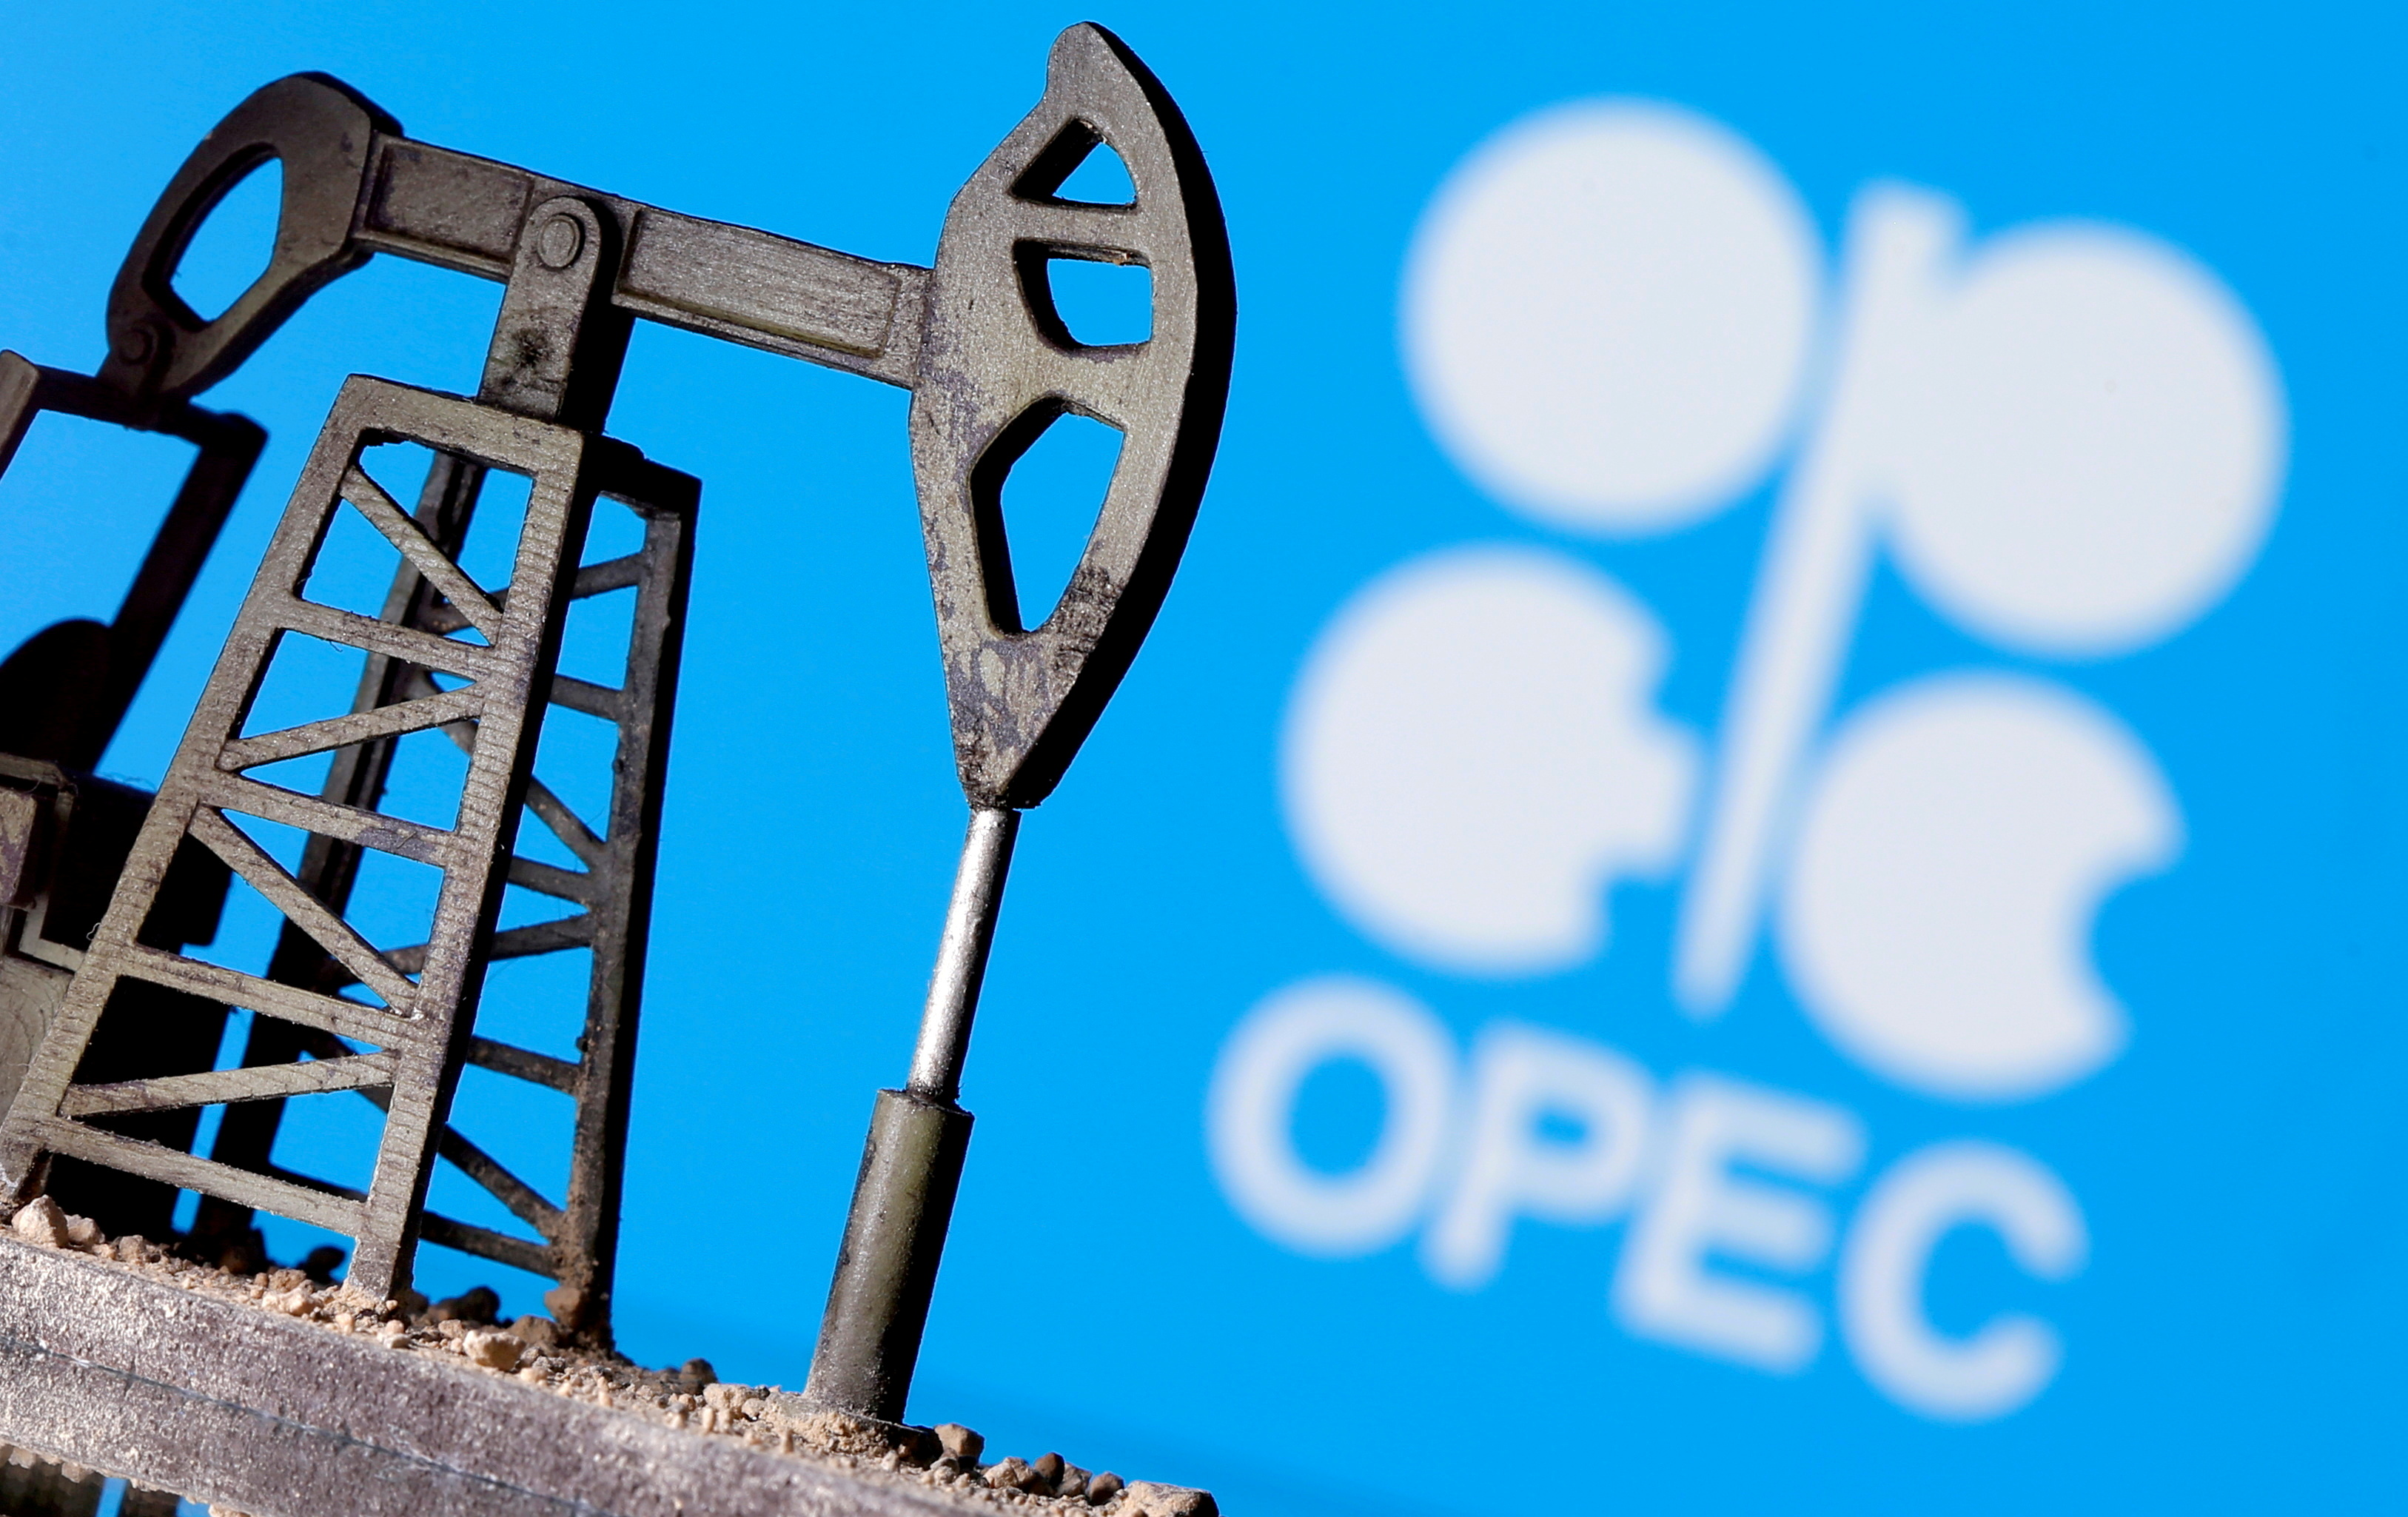 A 3D-printed oil pump jack is seen in front of a displayed OPEC logo in this illustration picture, April 14, 2020. REUTERS/Dado Ruvic